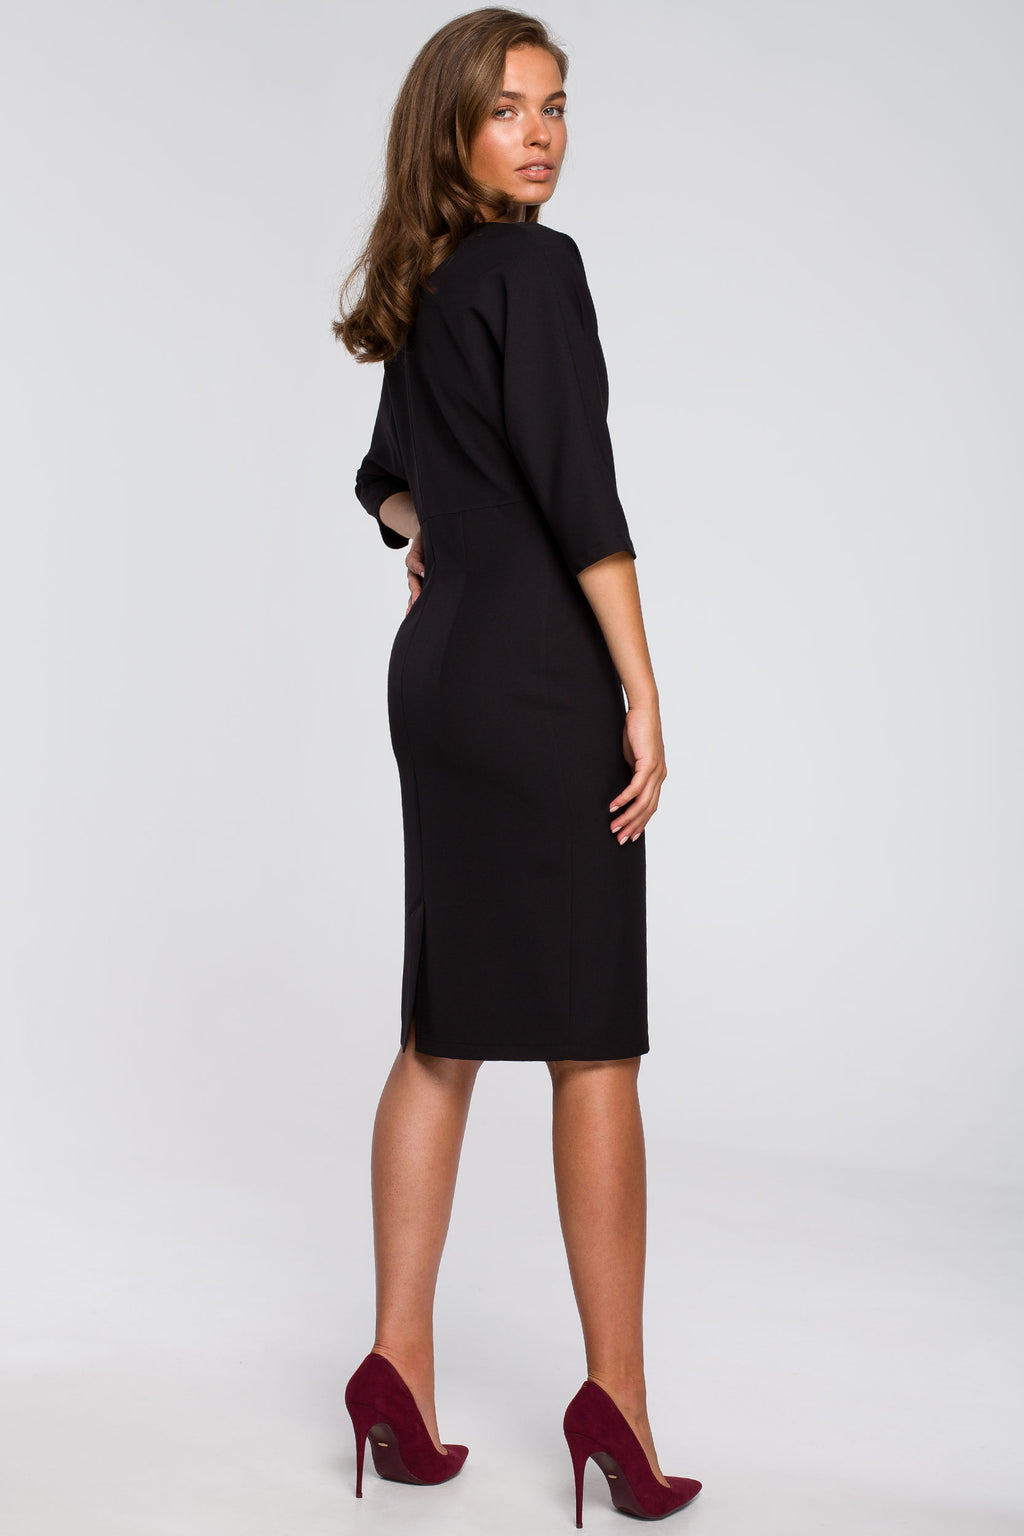 Pencil Black Dress With Fitted Waist And Kimono Top - So Chic Boutique